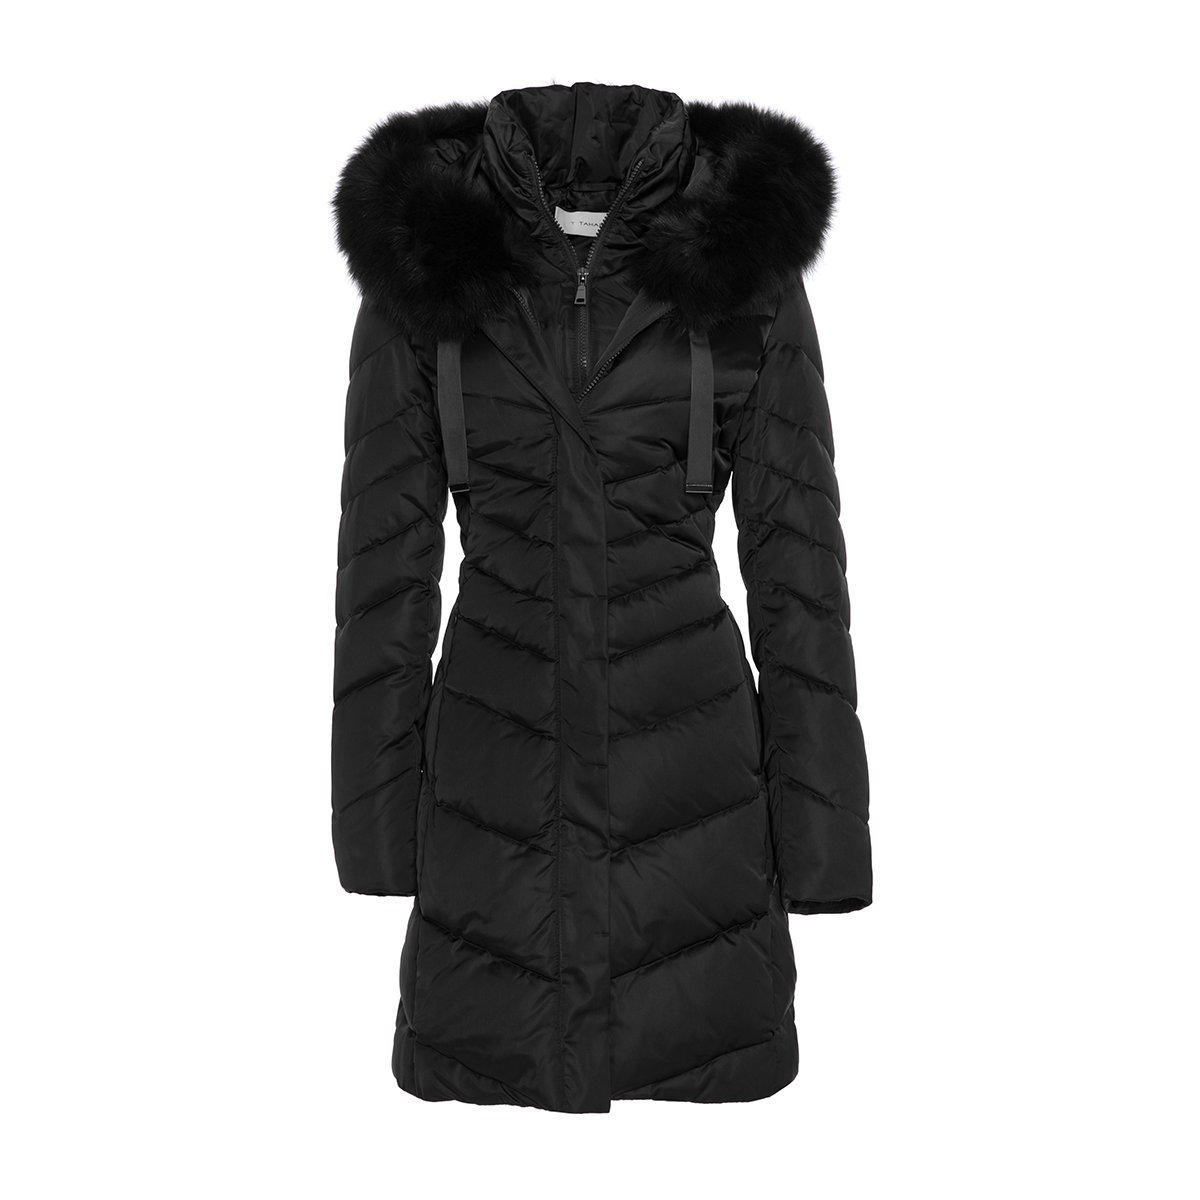 T Tahari Jolene' Real Fur Down Jacket (Medium, Black)